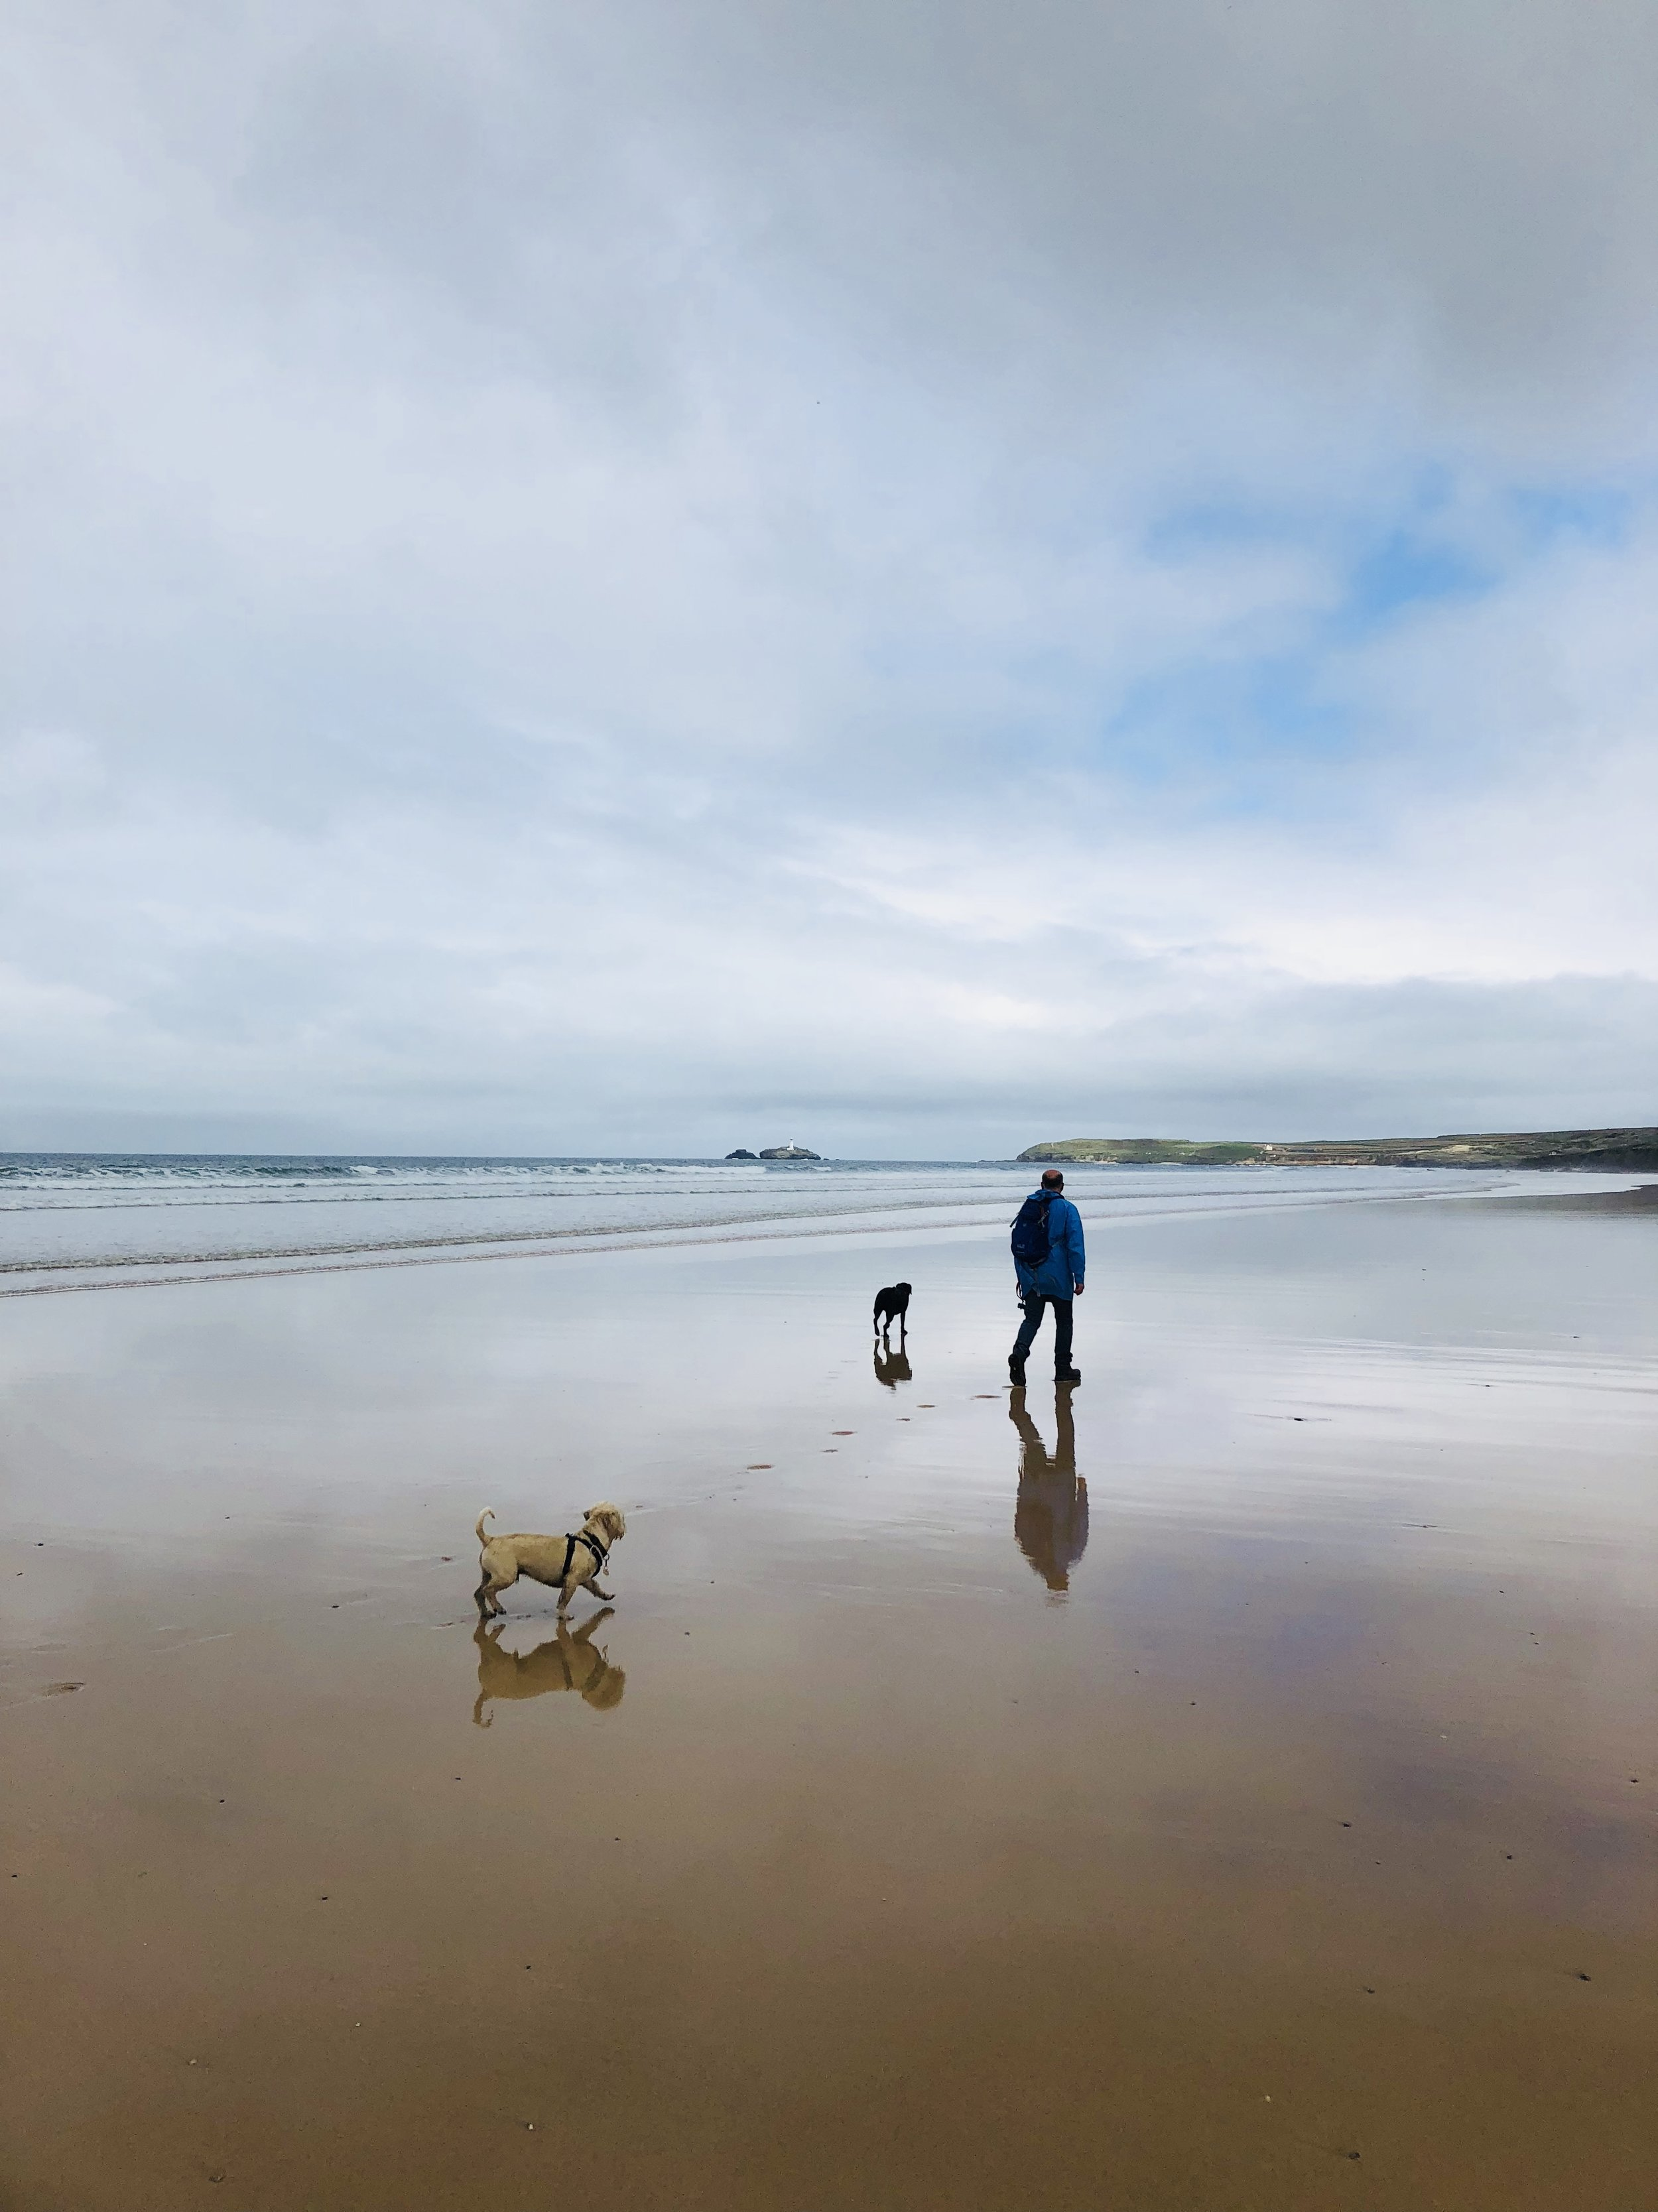 So fast now I'm overtaking dogs. Small and ageing dogs. Godrevy